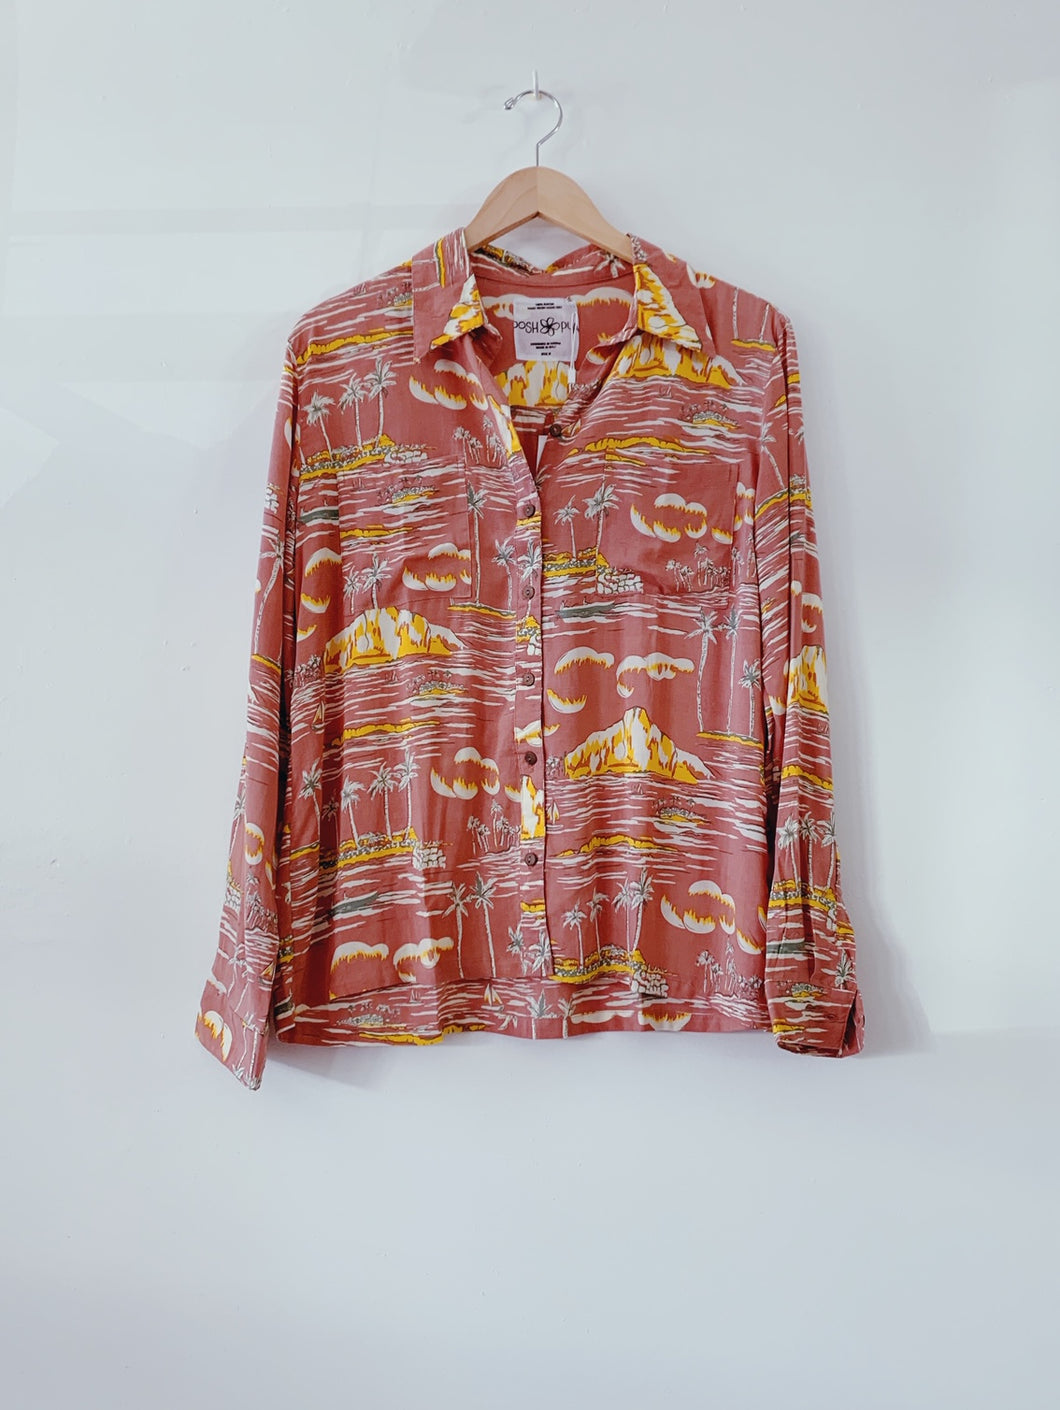 LONG SLEEVE ALOHA SHIRT - Waikiki Rose